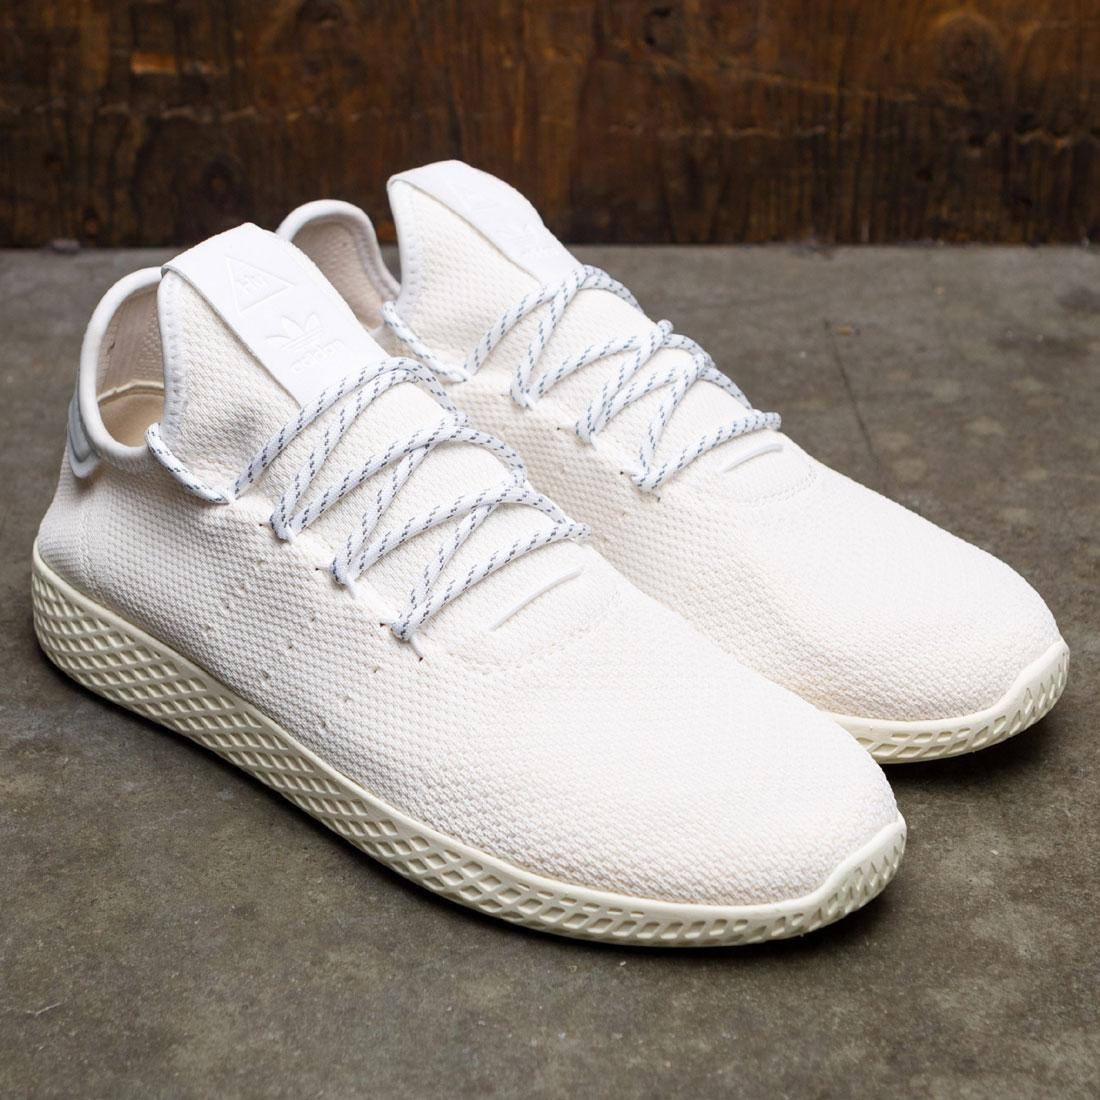 5914cbd86 ... best price adidas x pharrell williams men hu holi tennis hu bc white  cream white footwear